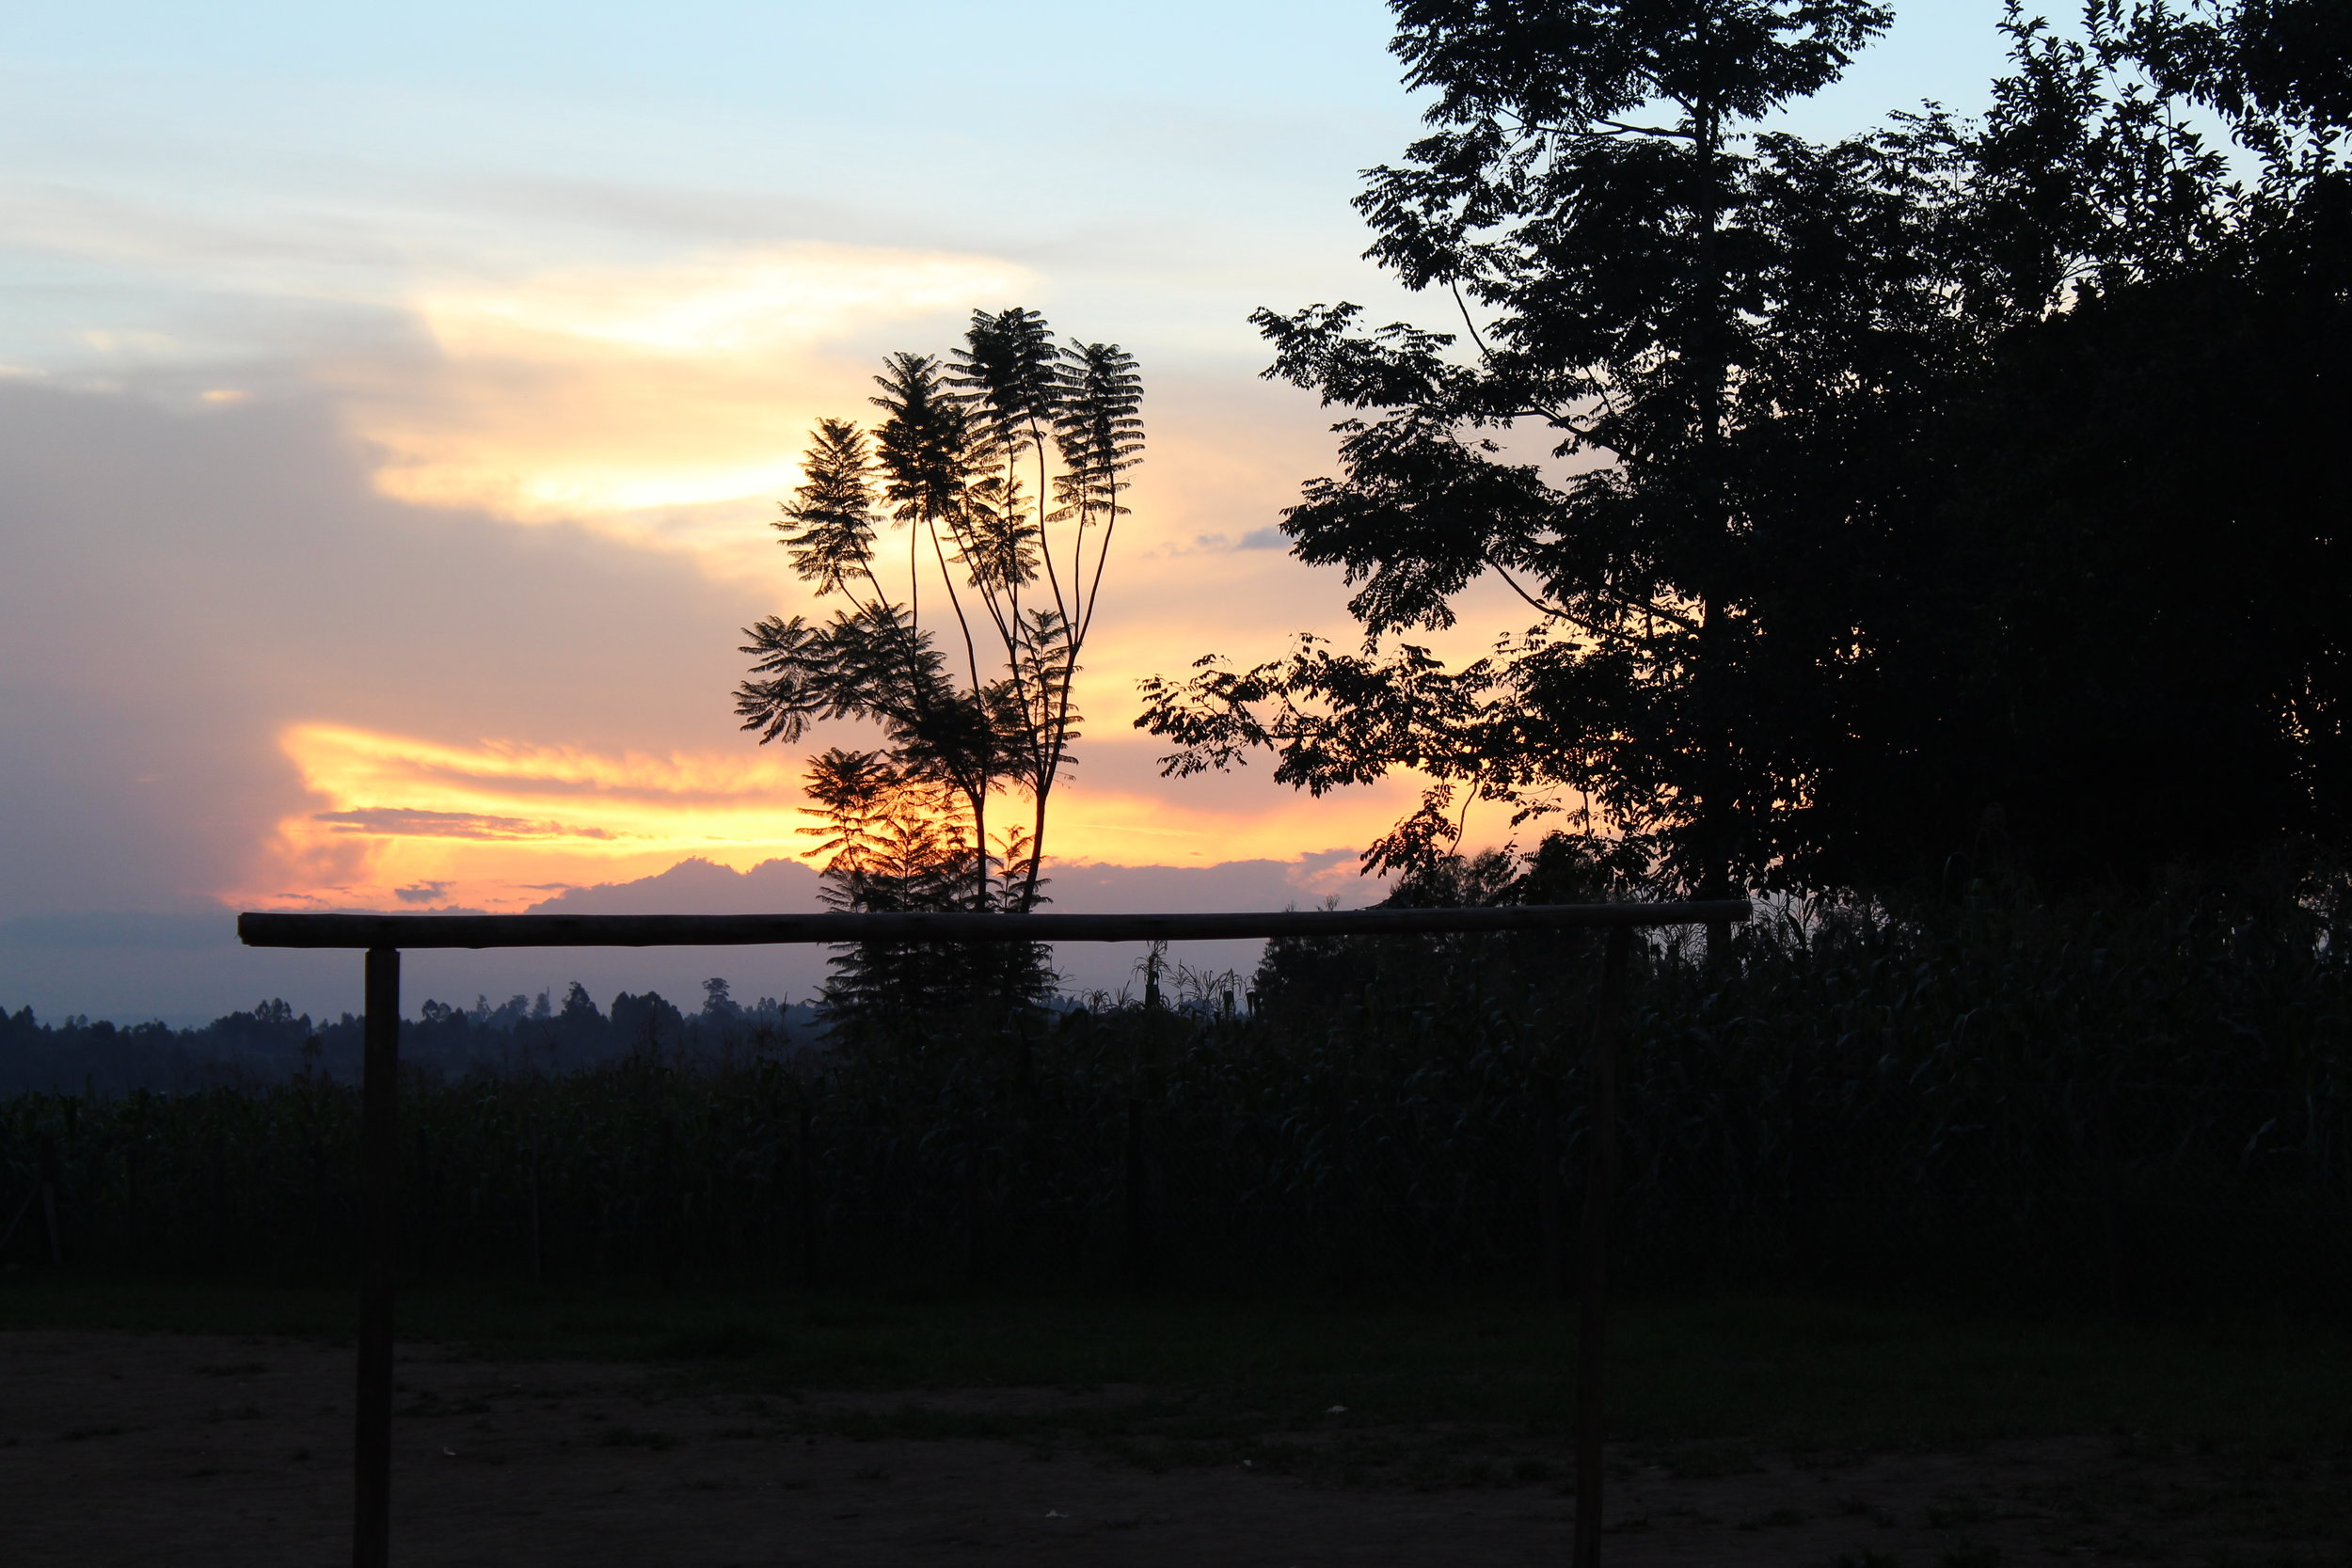 This sunset was from our first night in Kimilili, Kenya. You can see a few different staples from the community including a soccer goal post and corn growing in the fields. Several members of the community would play soccer in the evenings, and most also happened to grow corn in their fields.